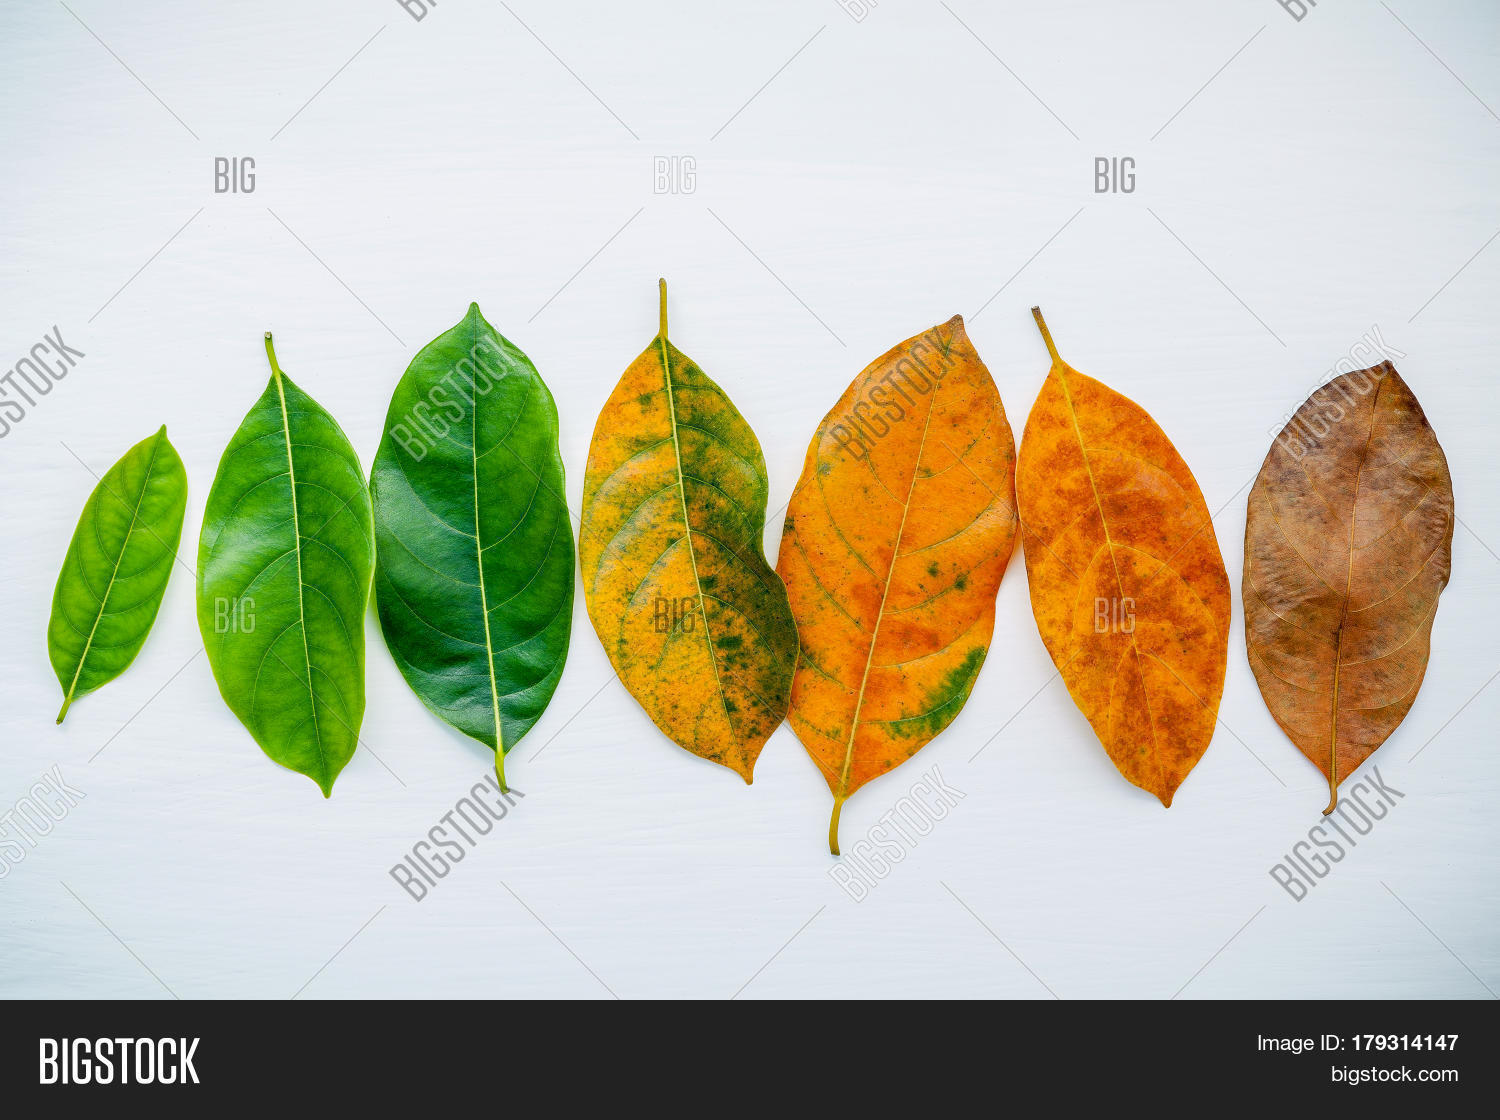 Jack fruit tree leaves